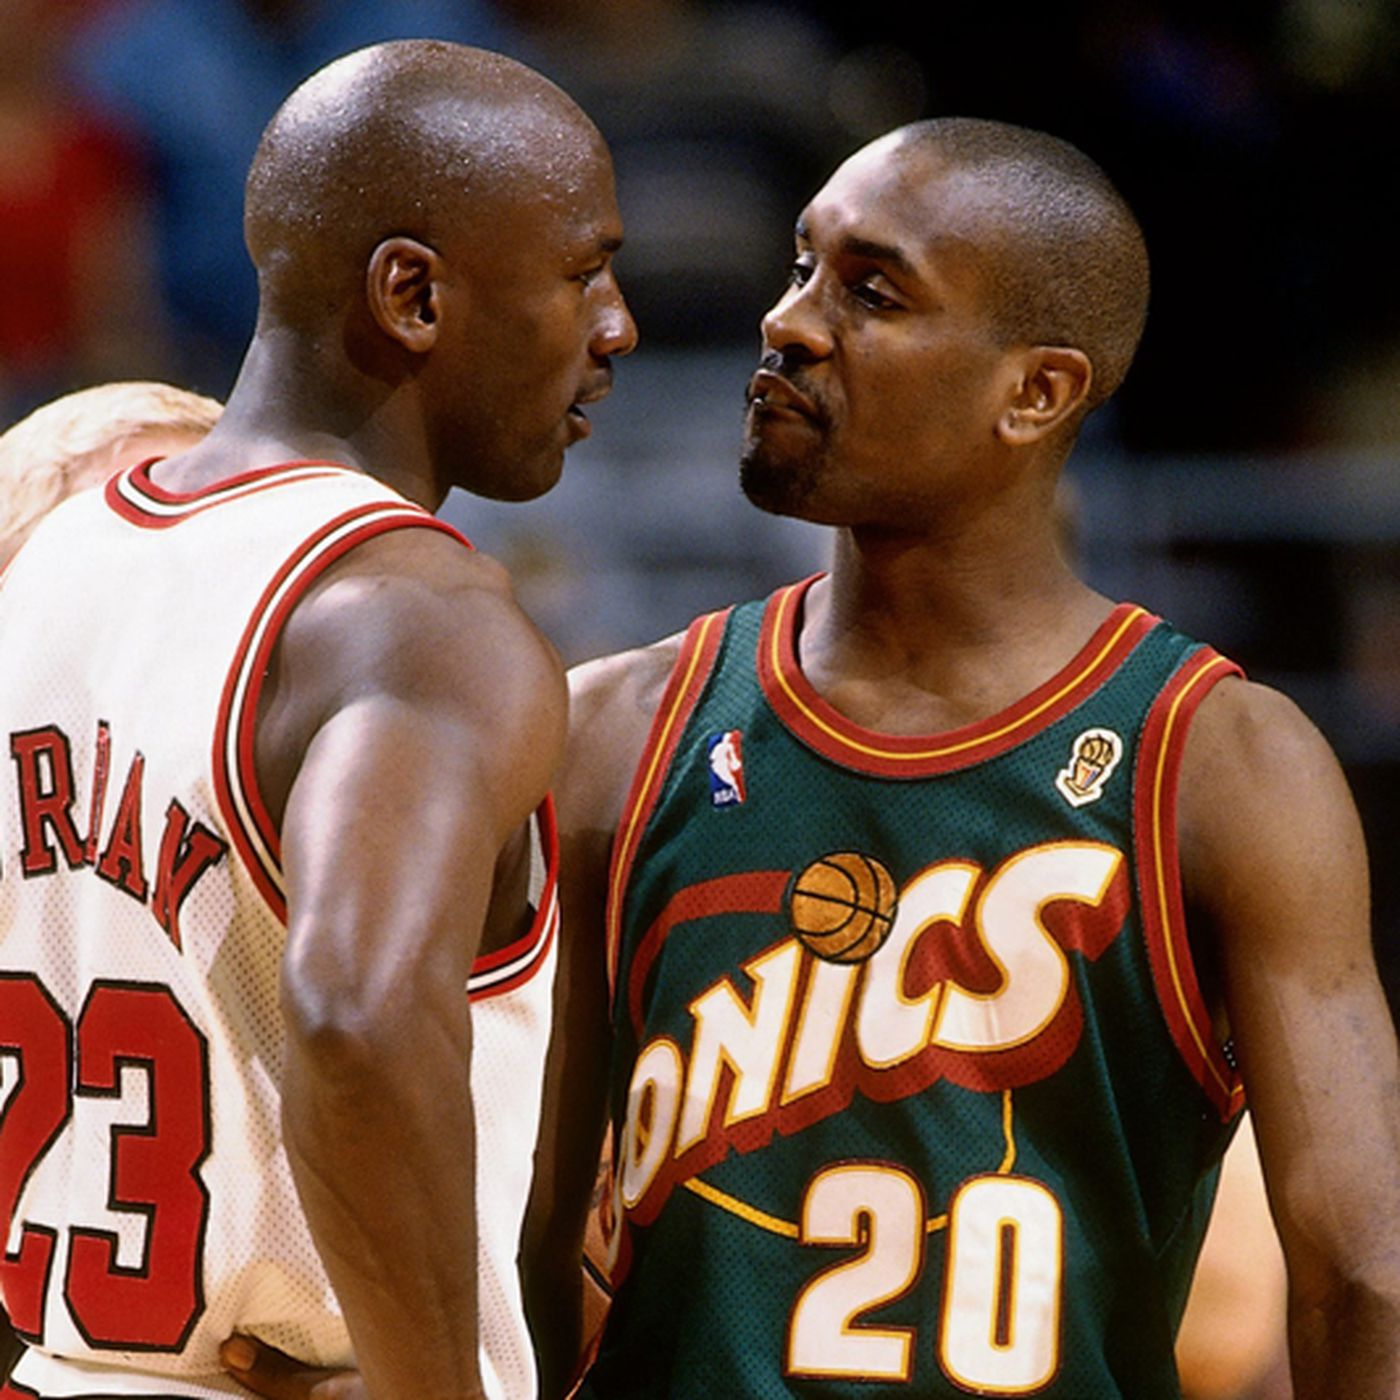 The Ten Greatest Players in Supersonics History - #1